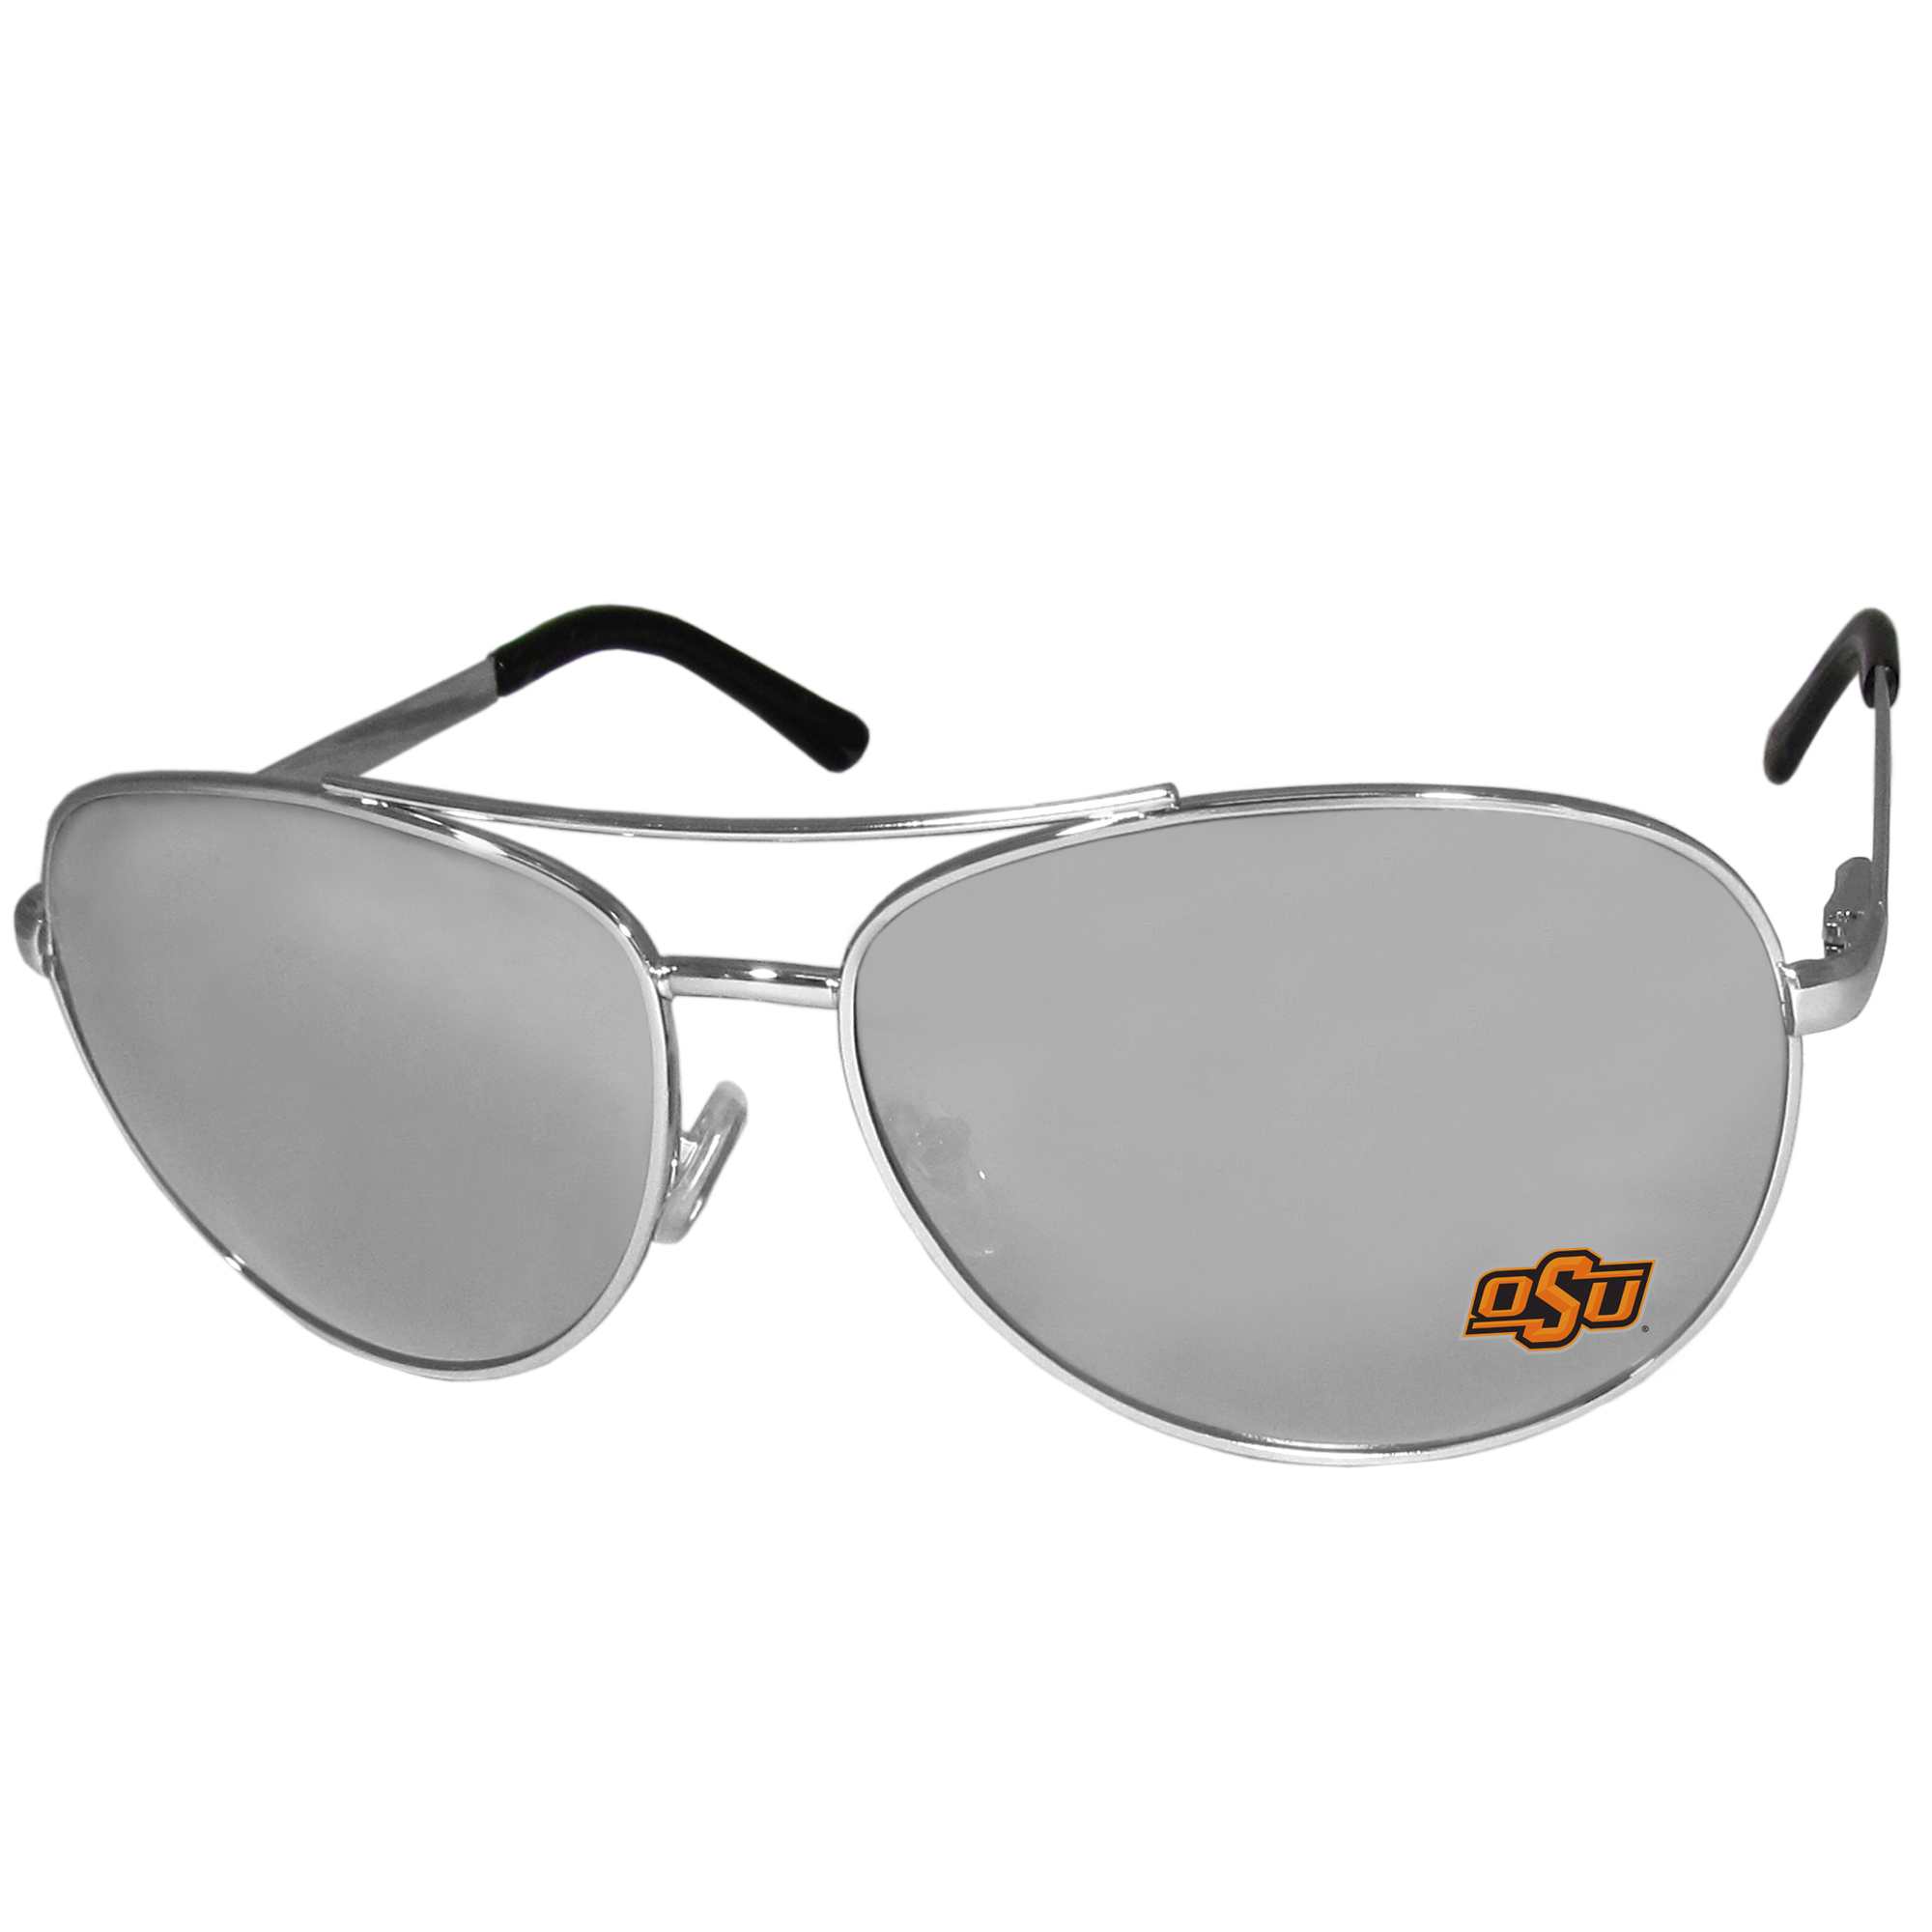 Oklahoma State Cowboys Aviator Sunglasses - Our aviator sunglasses have the iconic aviator style with mirrored lenses and metal frames. The glasses feature a silk screened Oklahoma State Cowboys logo in the corner of the lense. 100% UVA/UVB protection.